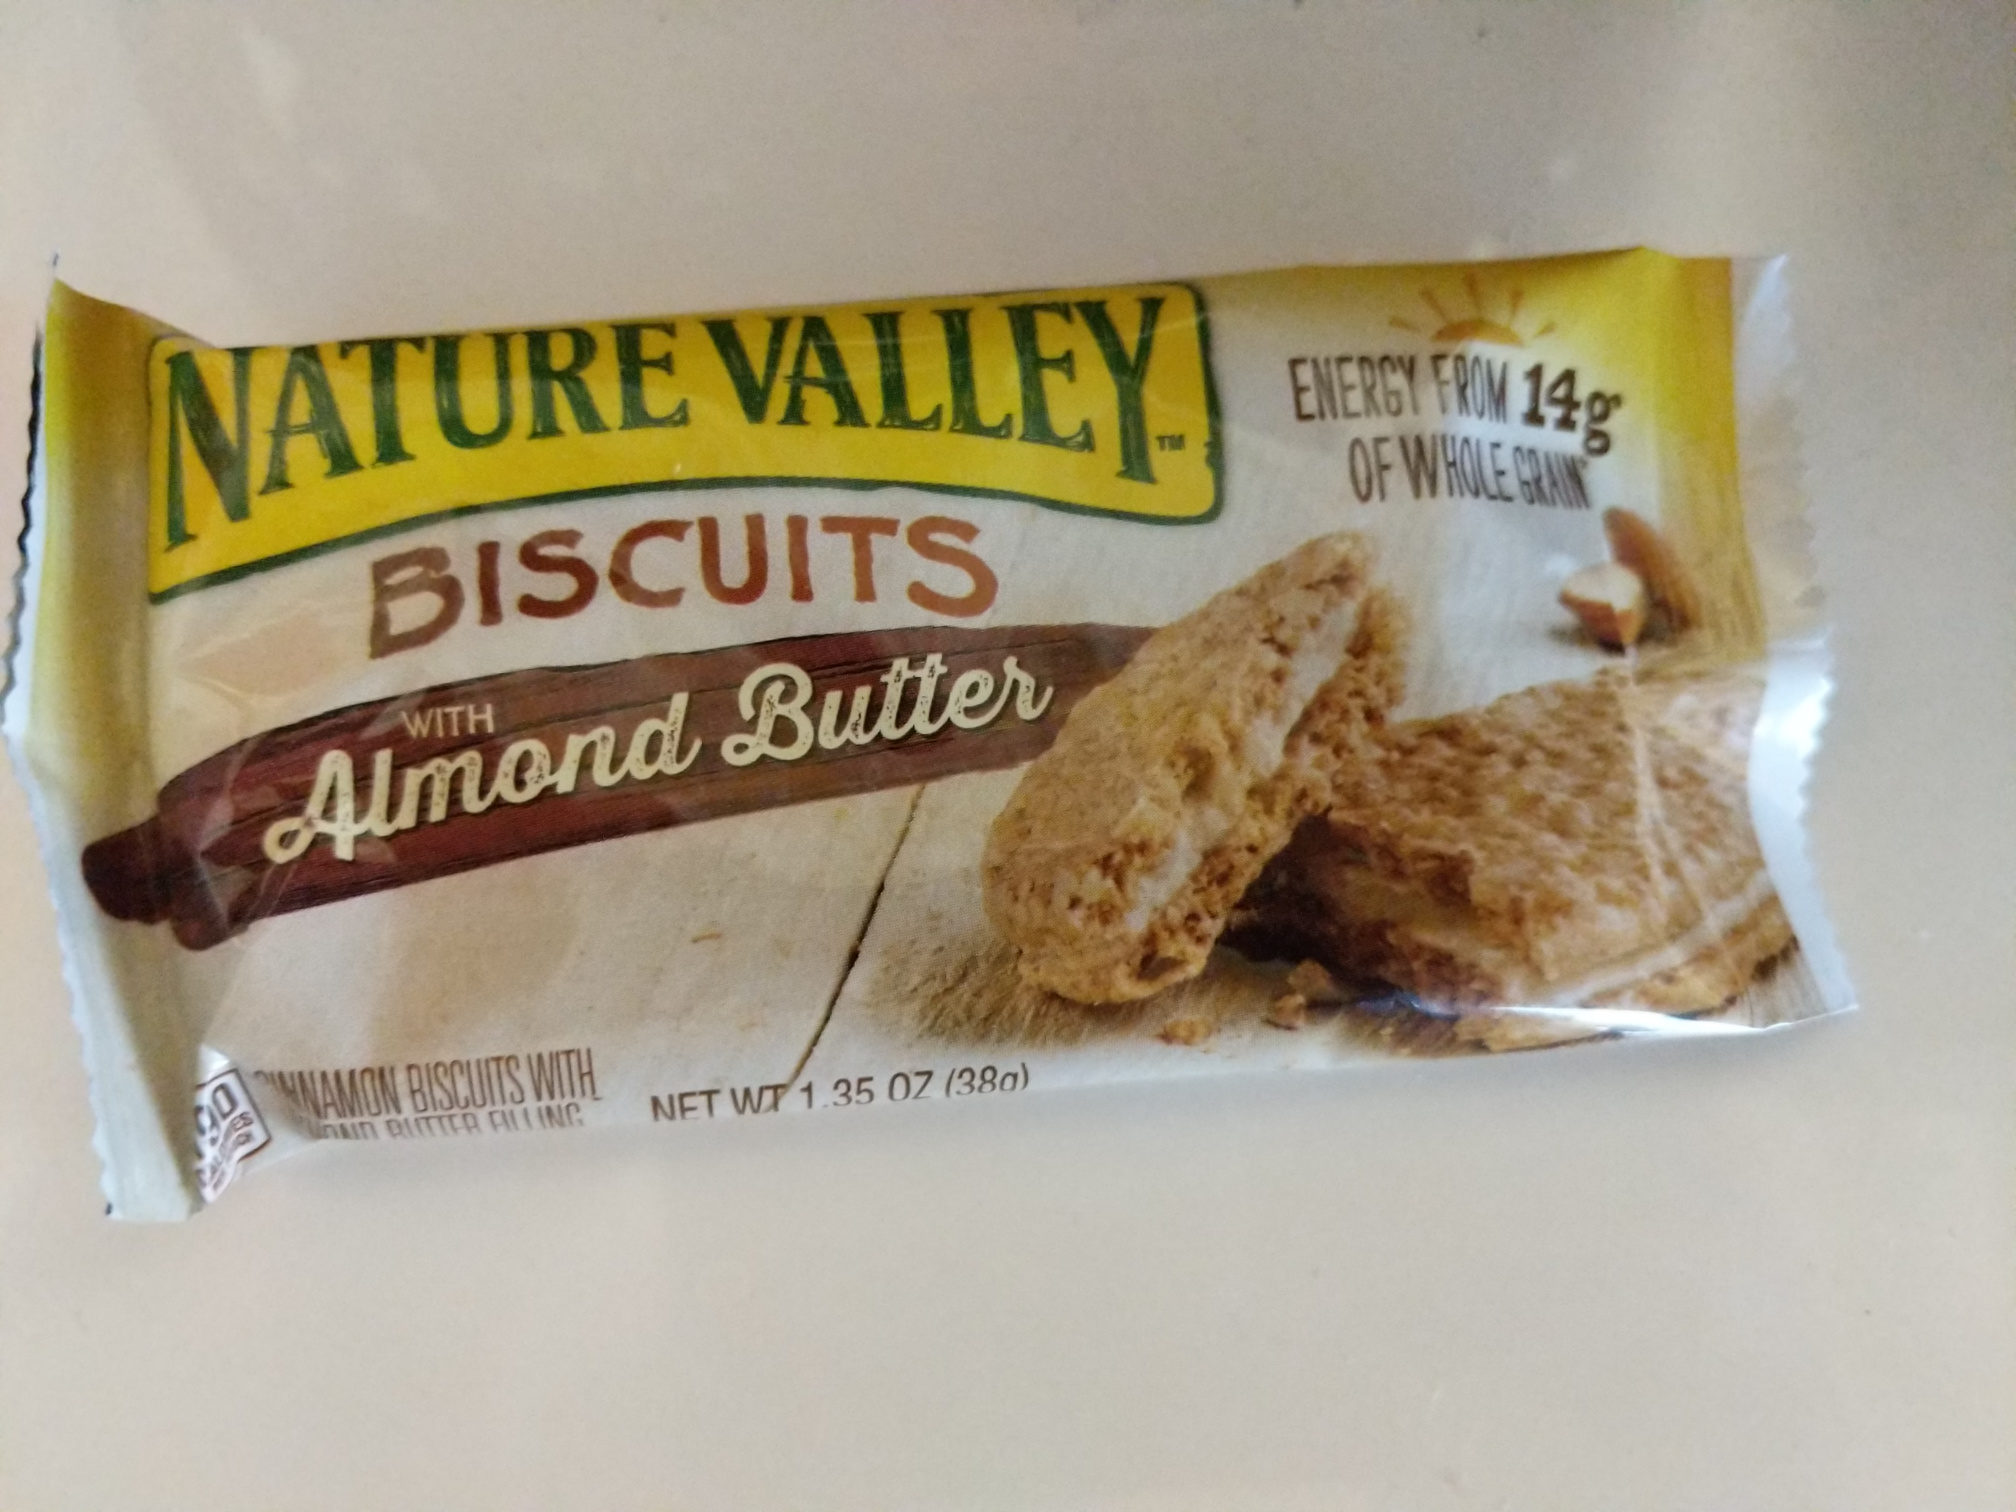 Nature Valley Cinnamon Biscuits with Almond Butter Filling - Product - en